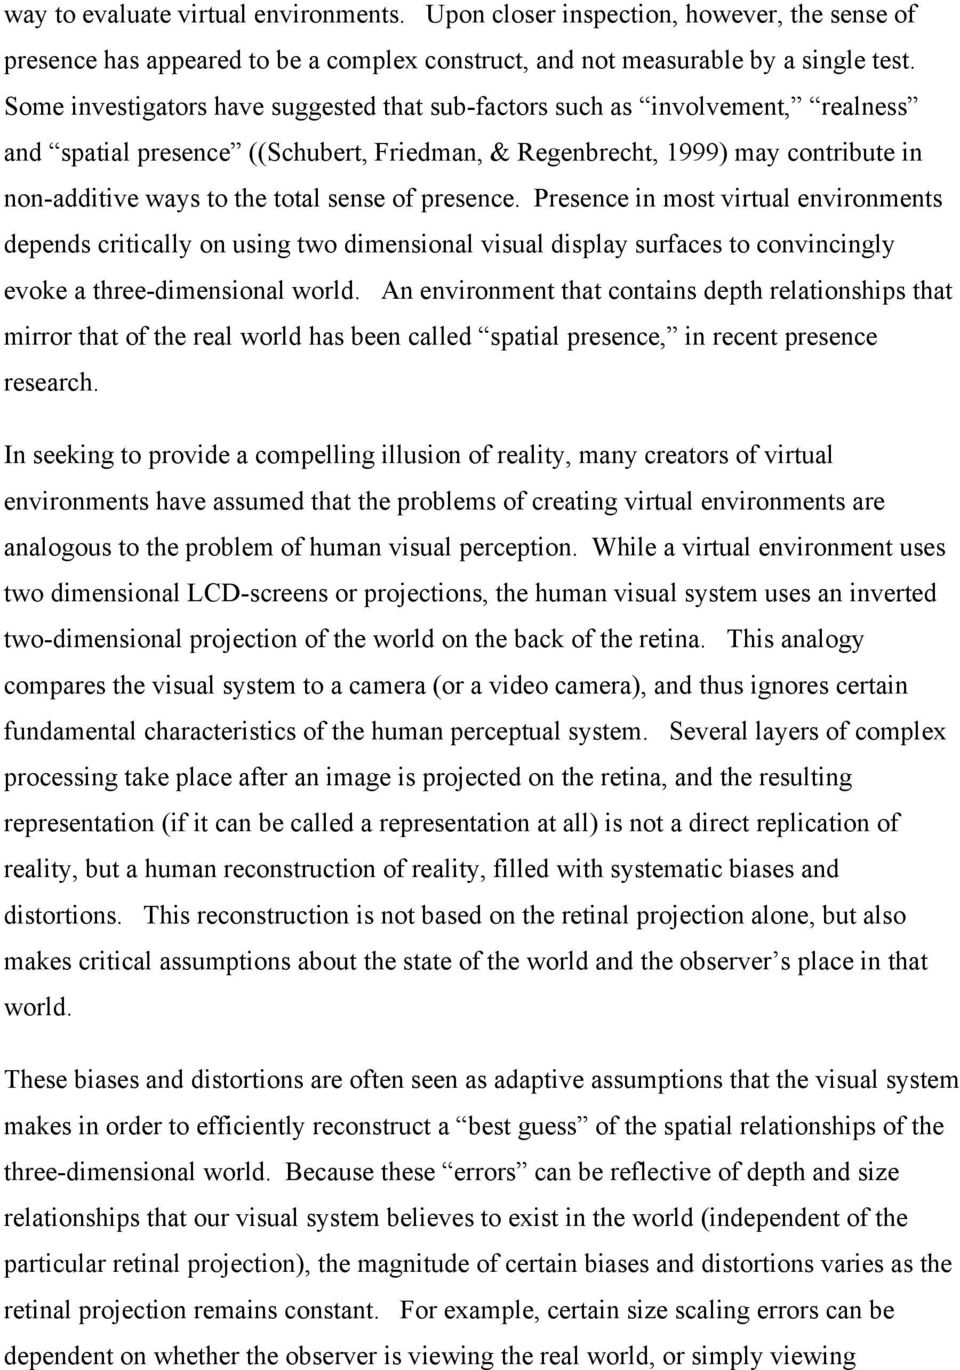 of presence. Presence in most virtual environments depends critically on using two dimensional visual display surfaces to convincingly evoke a three-dimensional world.